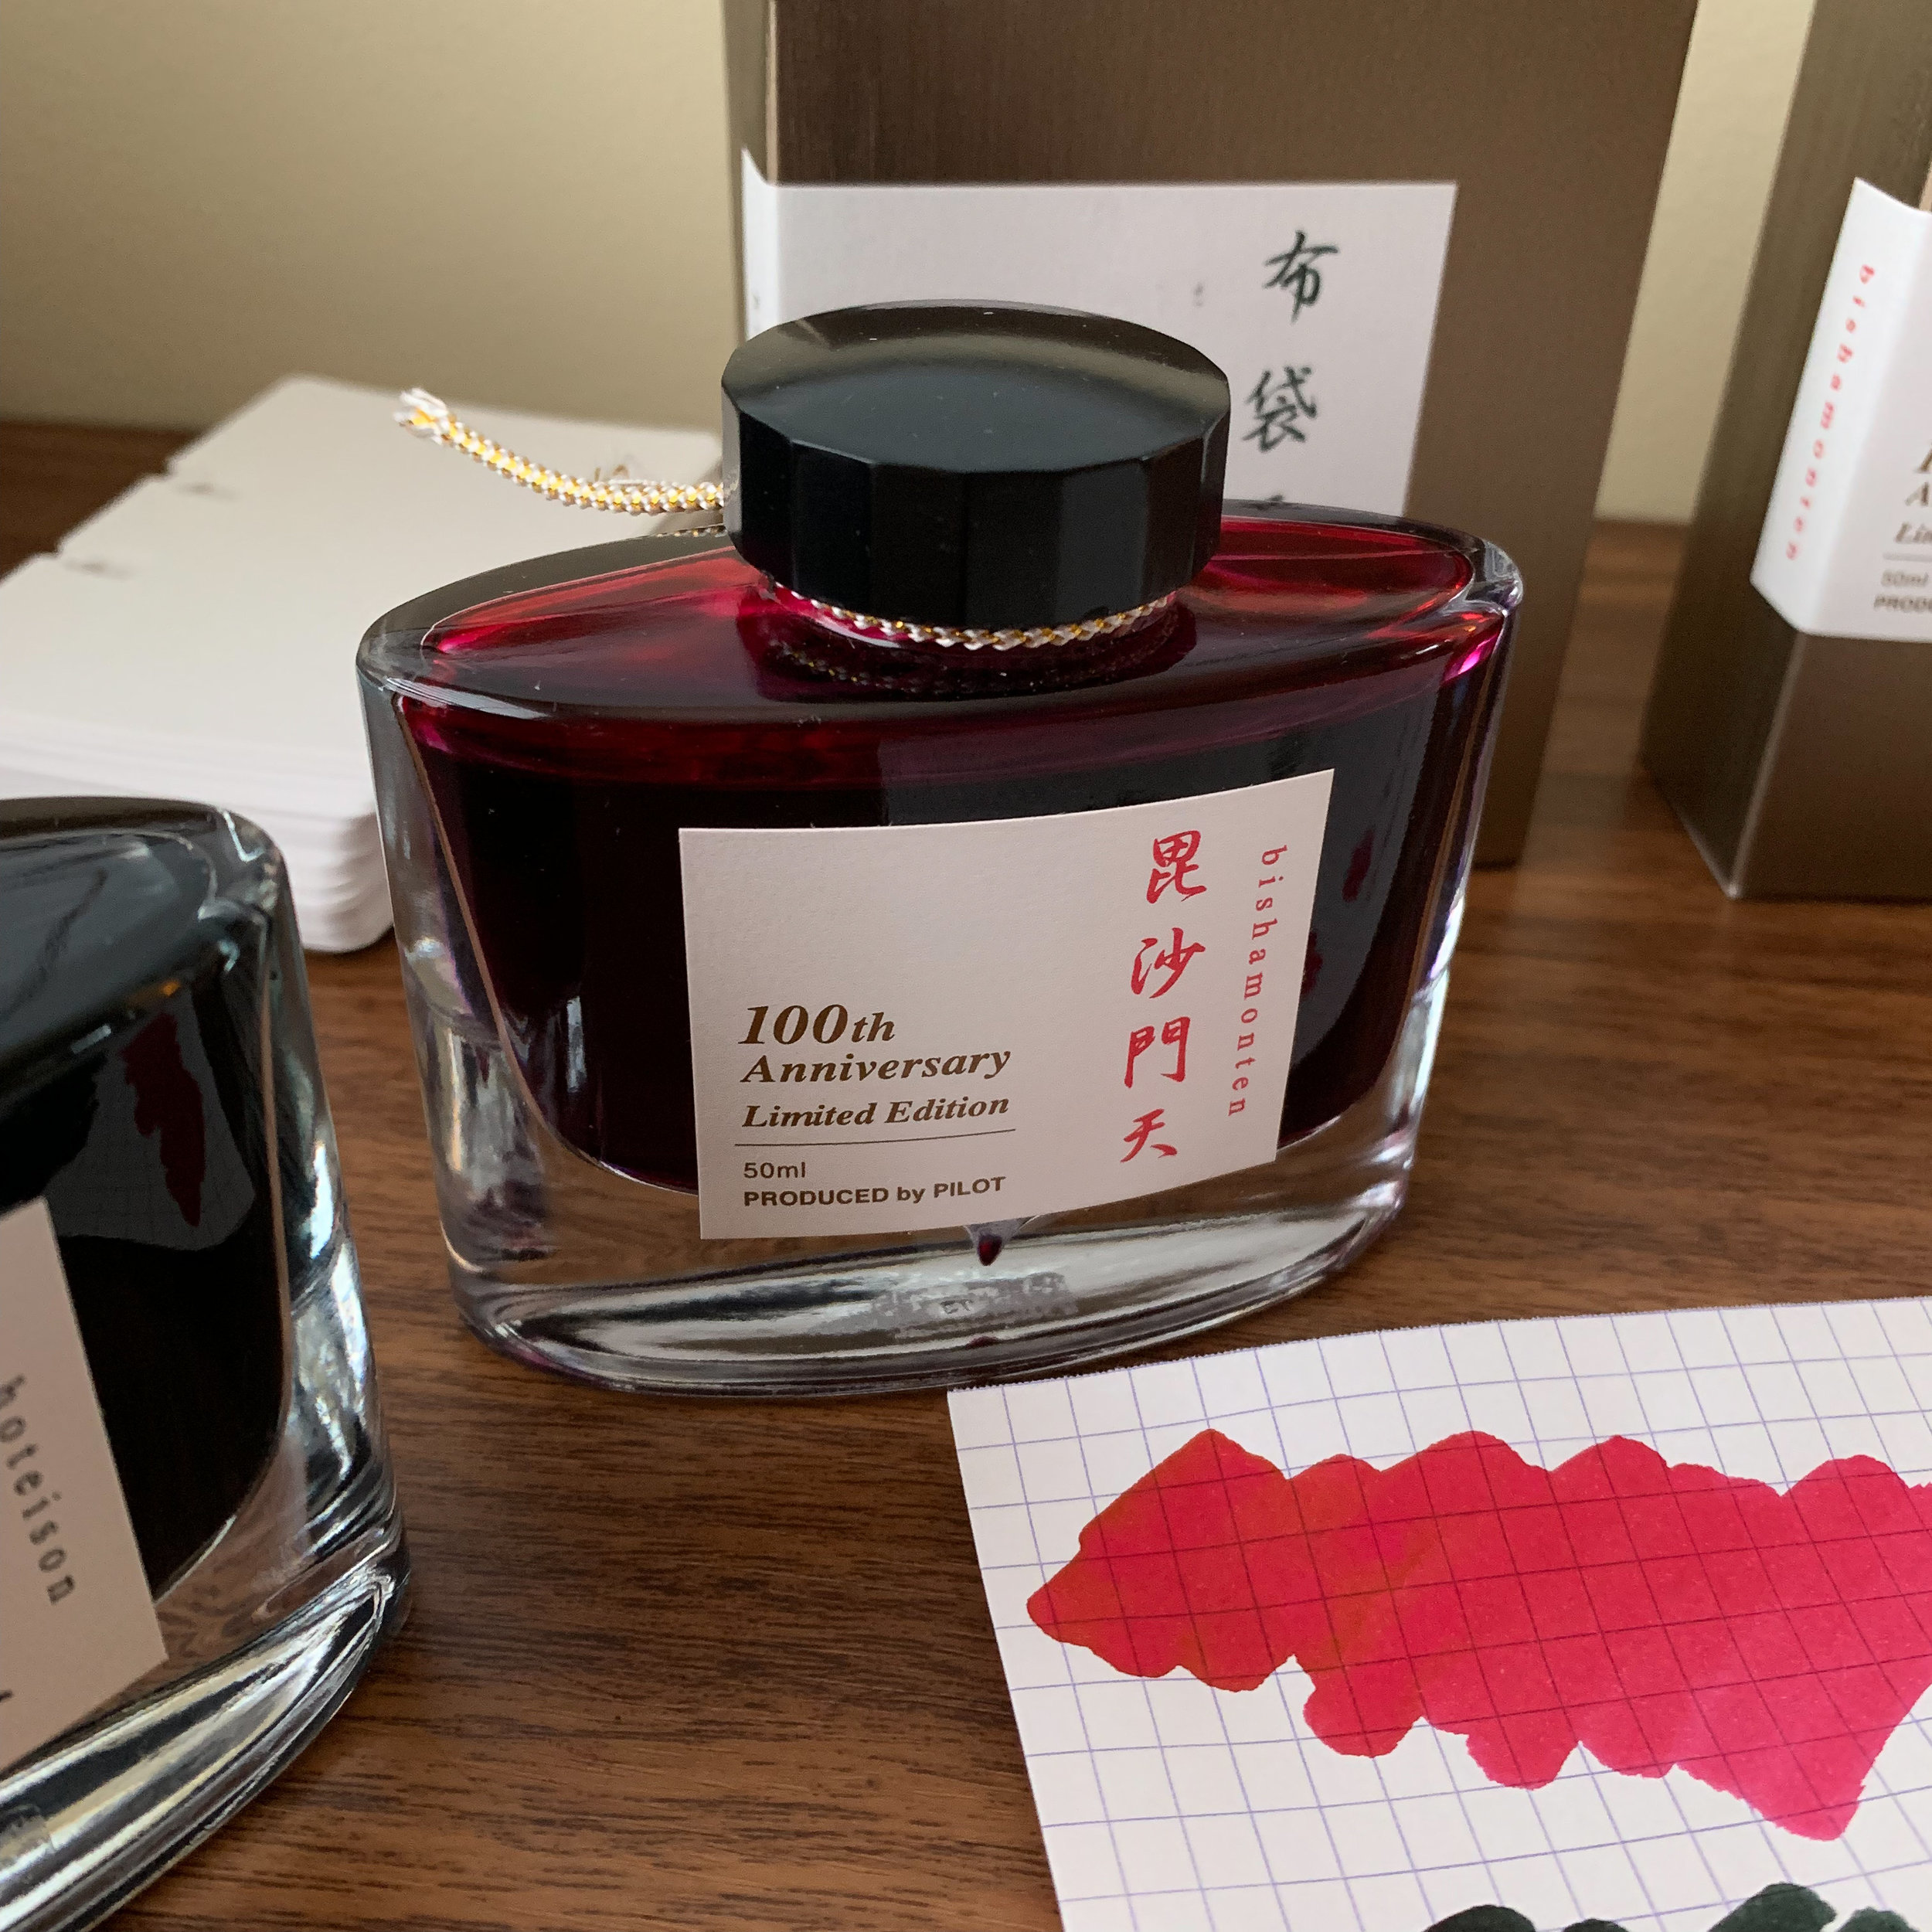 Finally, a pure red Iroshizuku from Pilot? Not quite, but it's still a nice ink. Read the full review below.